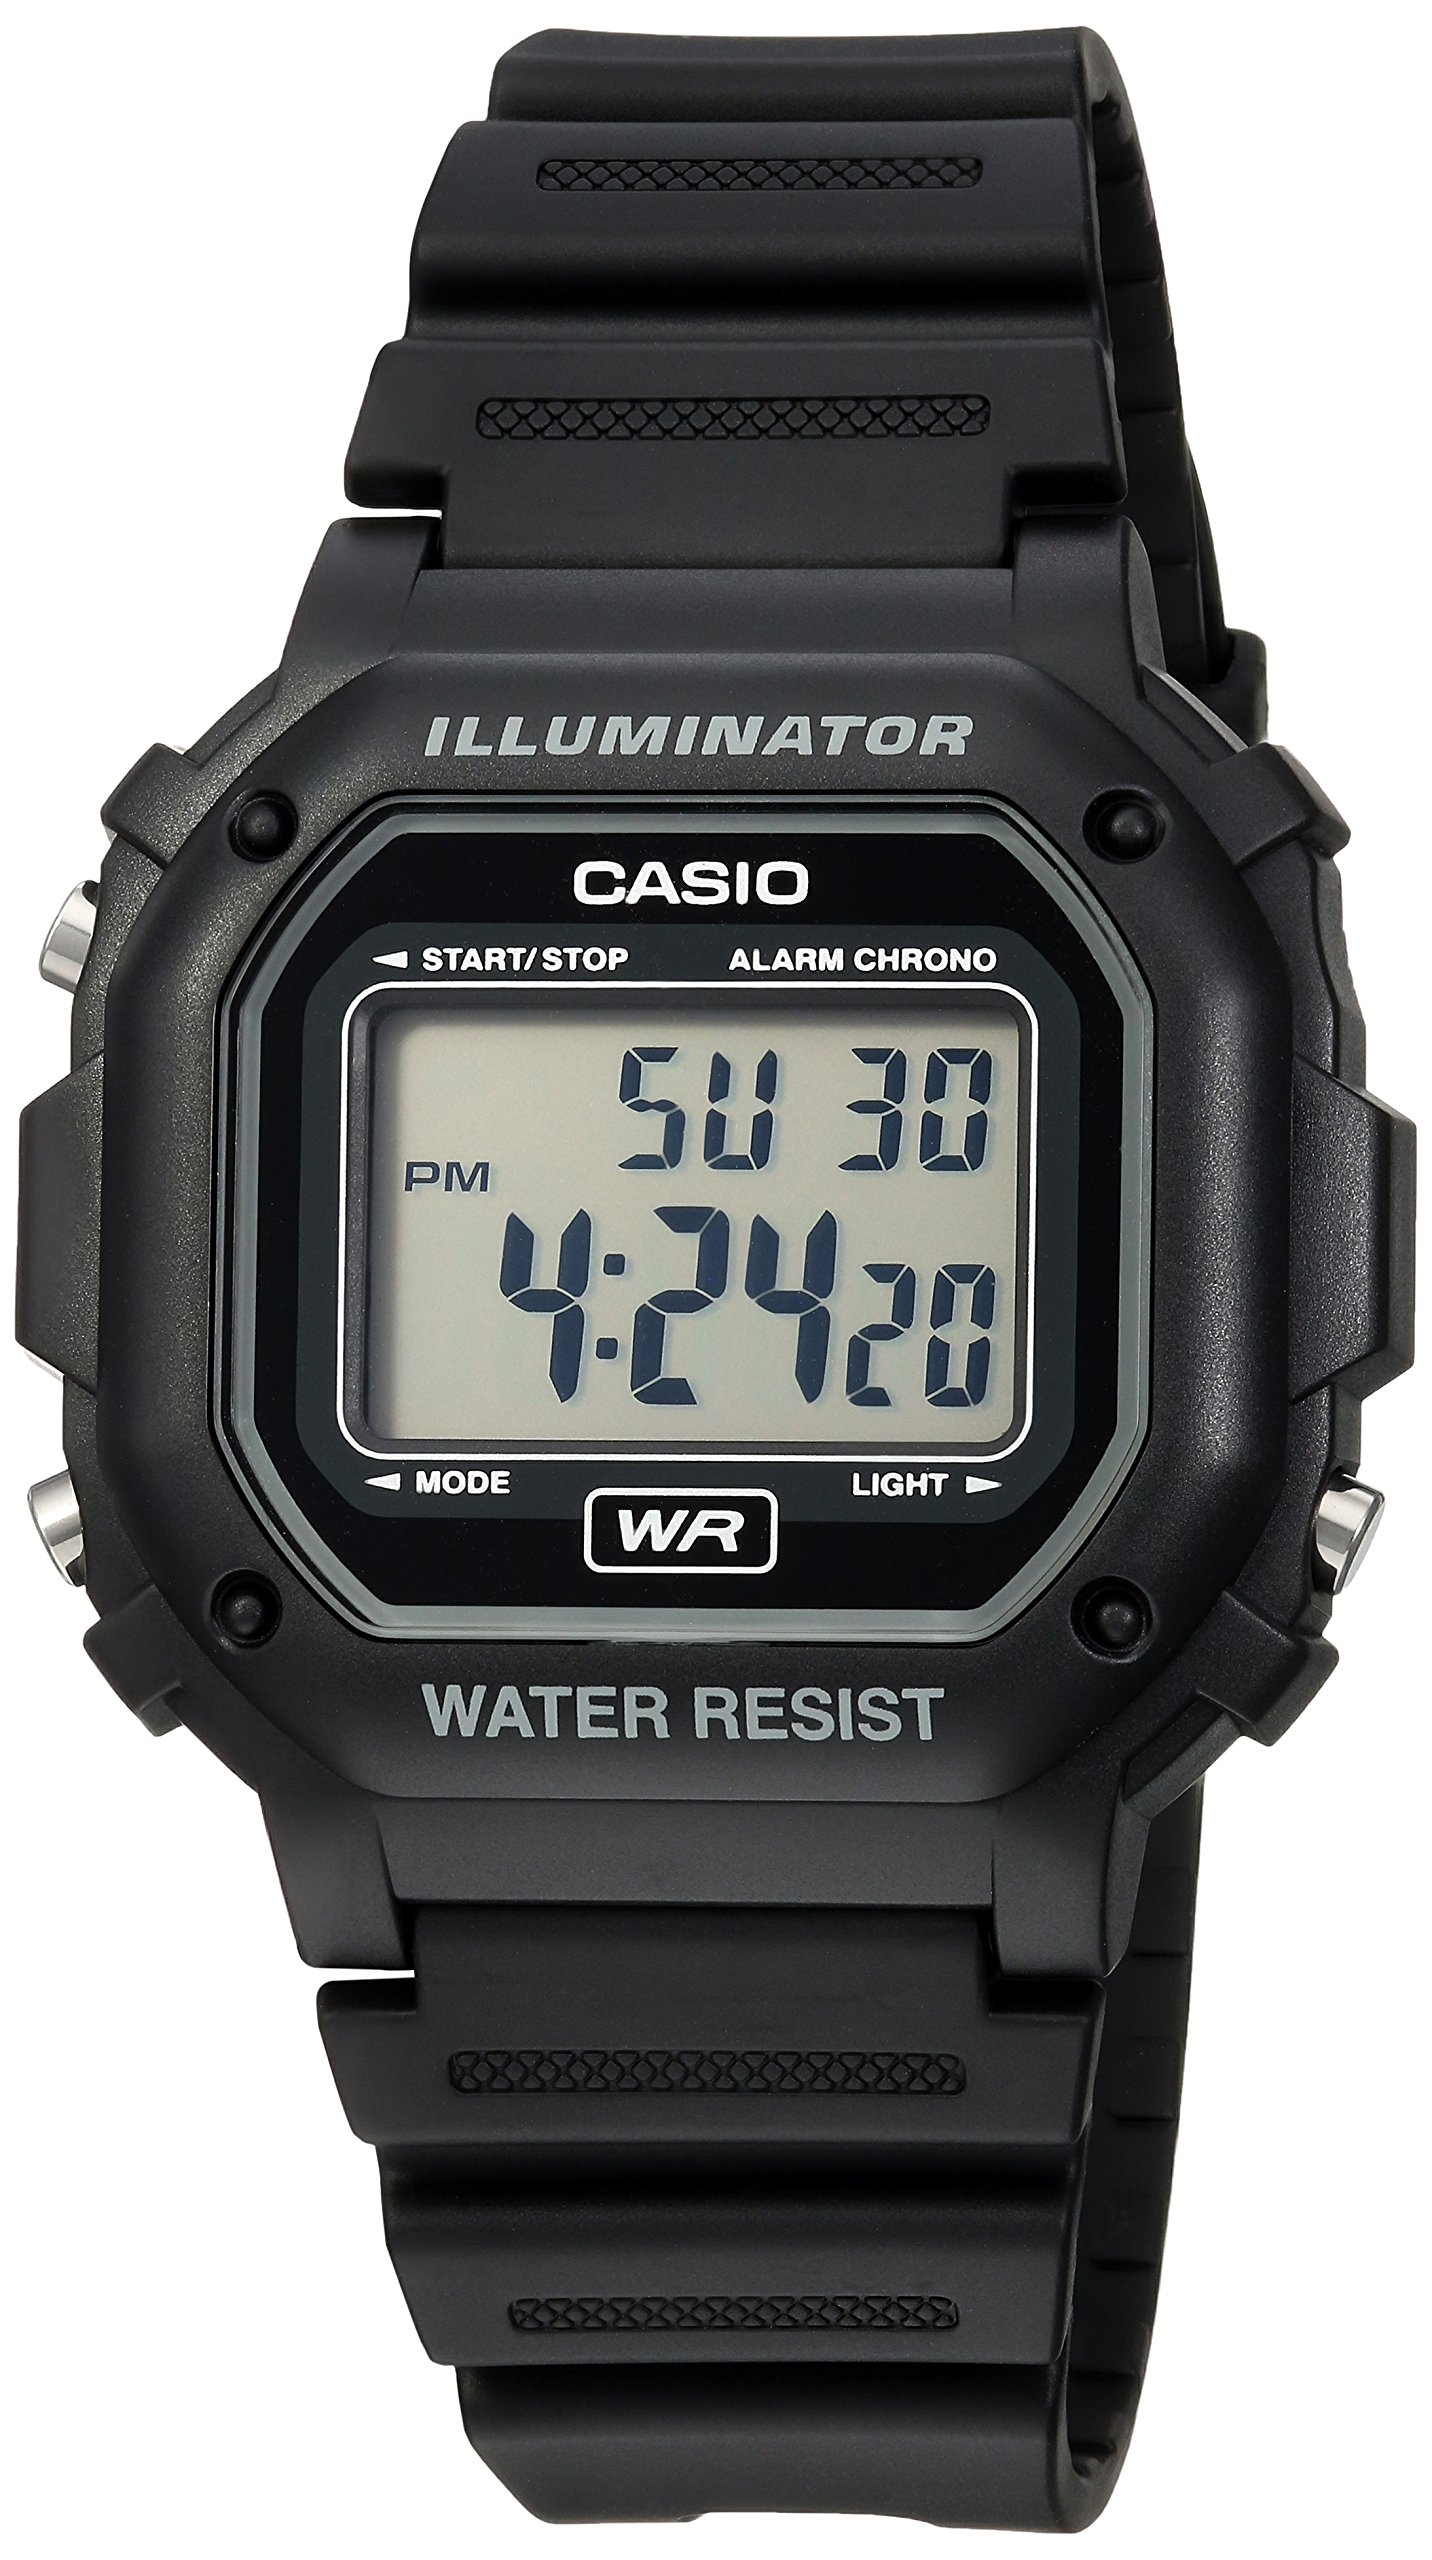 Casio Men's F108WH Illuminator Collection Black Resin Strap Digital Watch by Casio